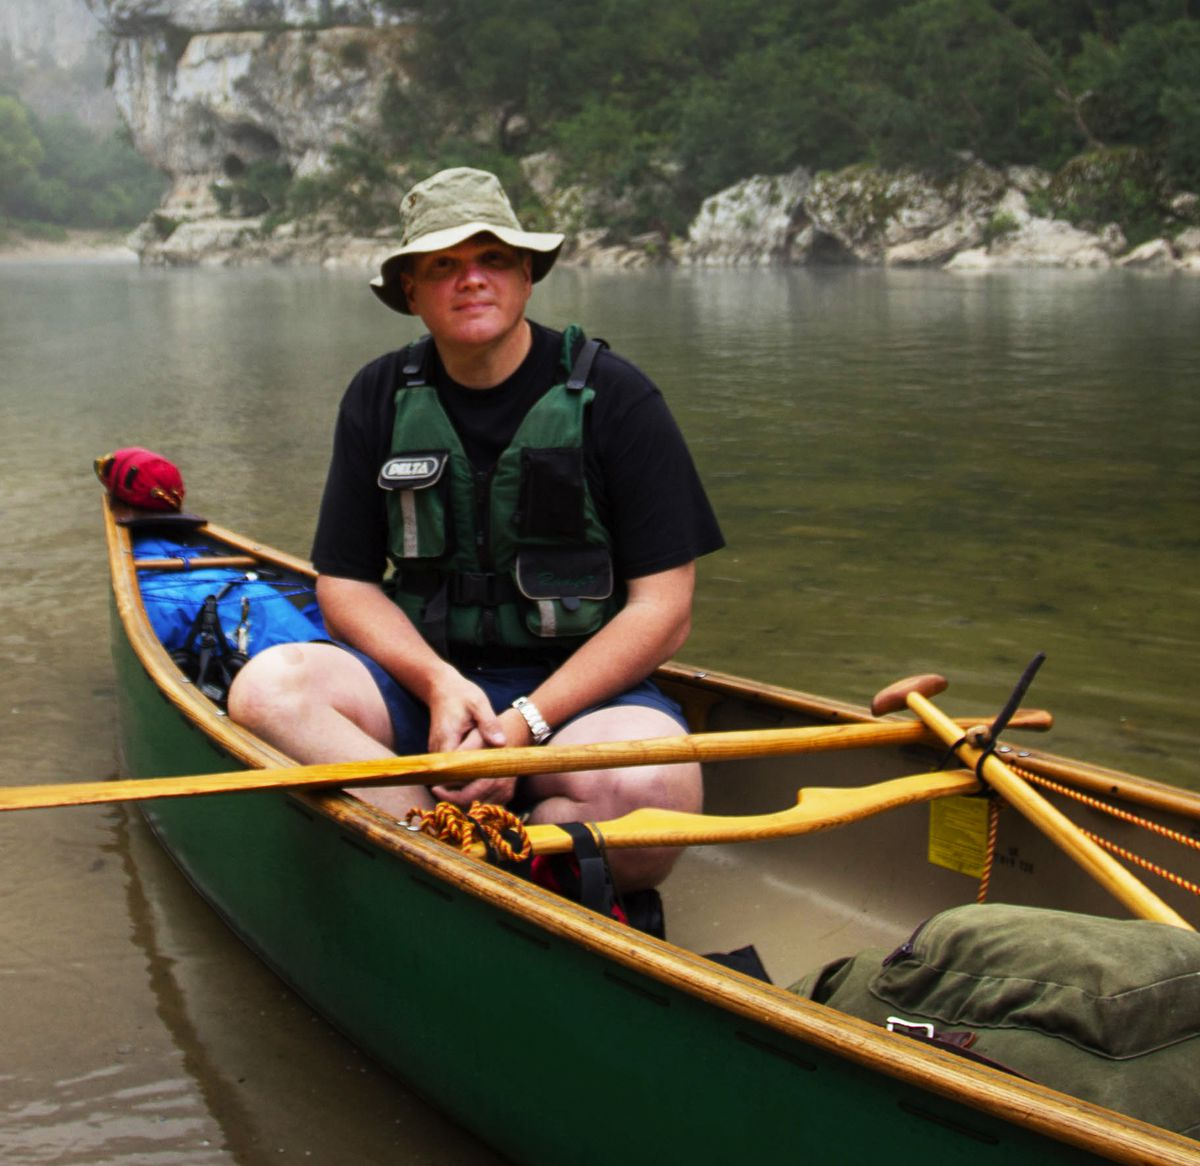 One man in a boat – Ray on one of his adventures